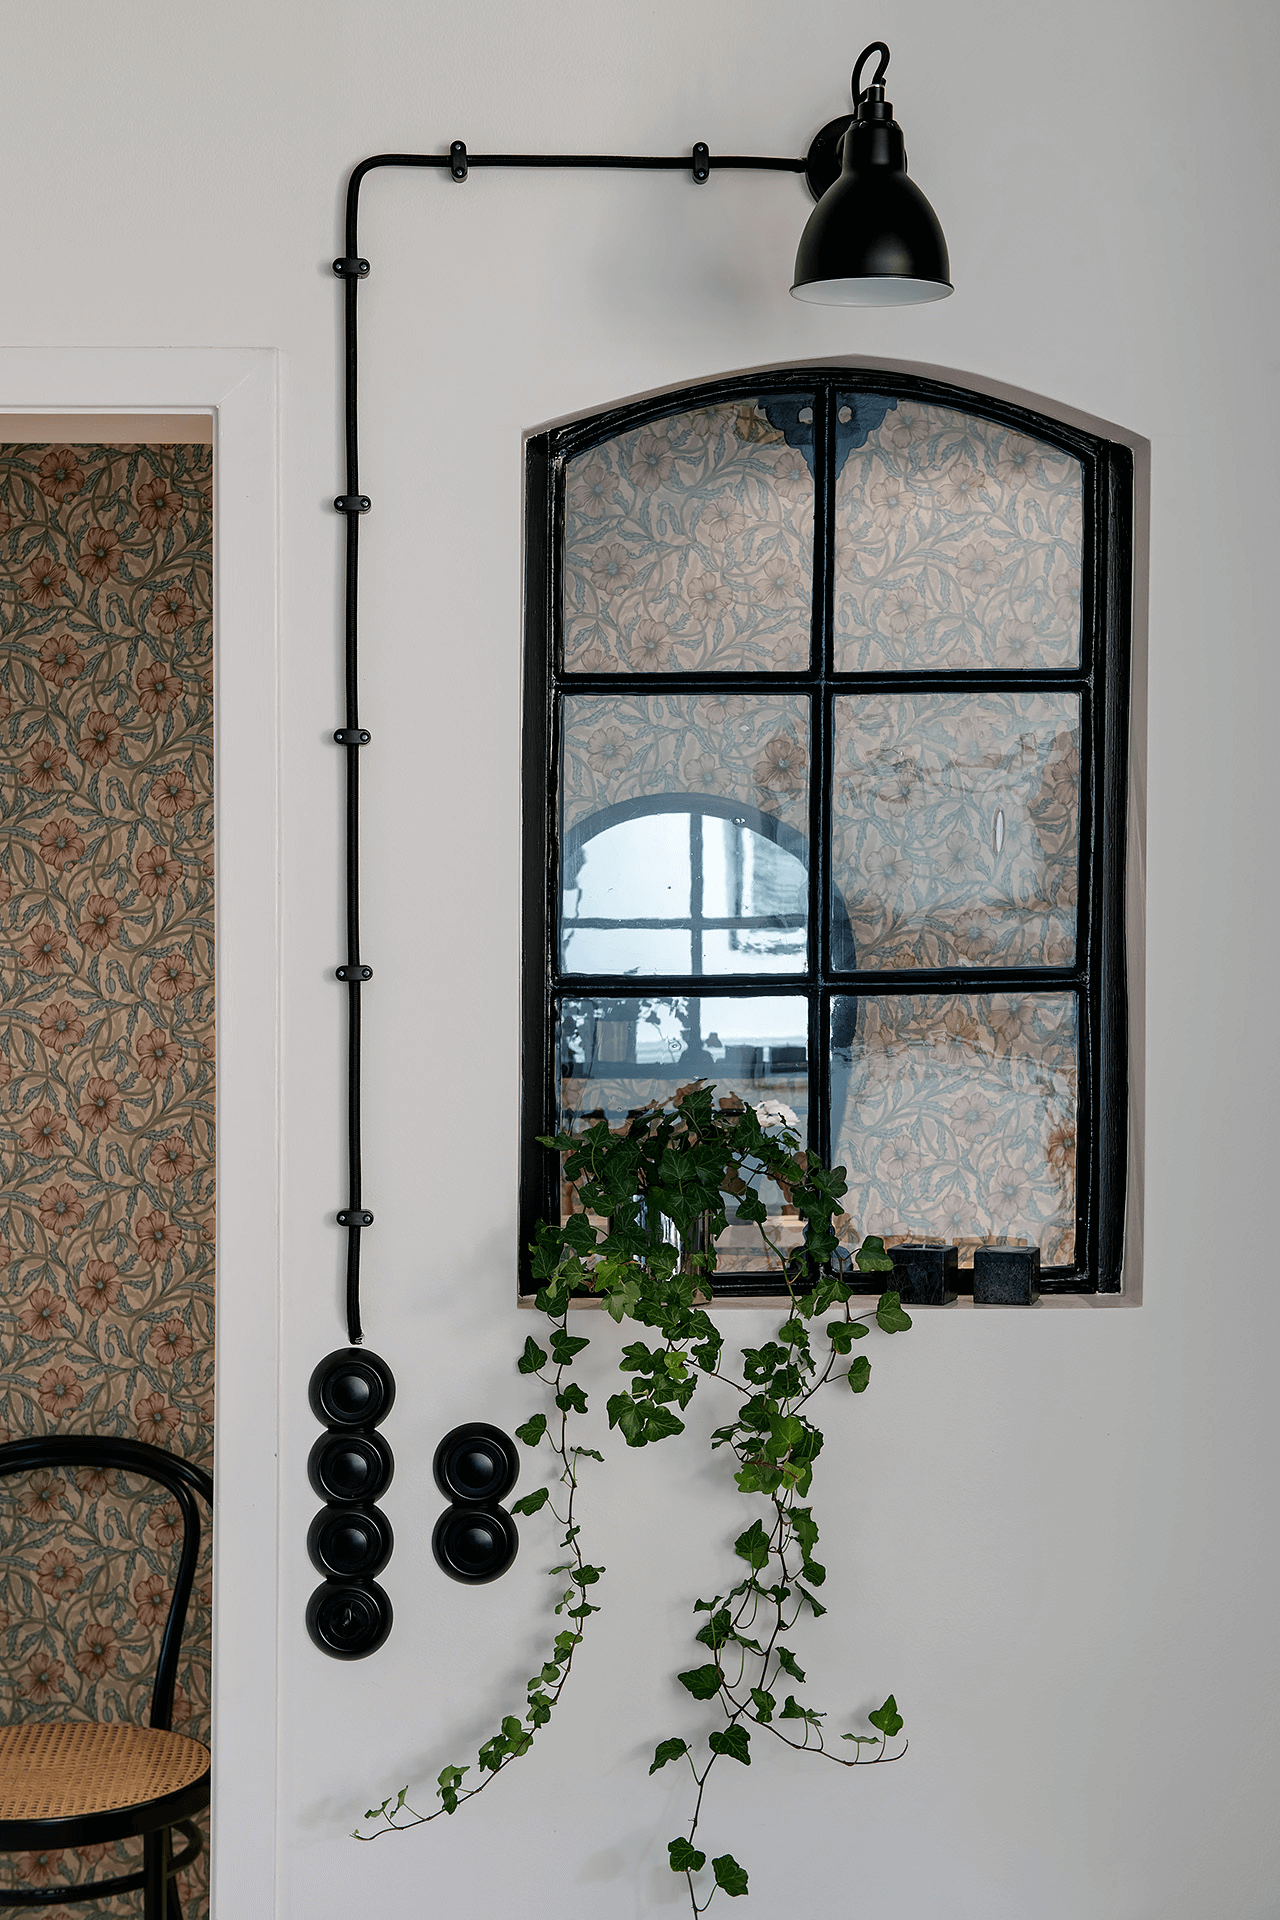 this is a window in an scandinavian styled apartment with a lamp shade and indoor plants surrounding it